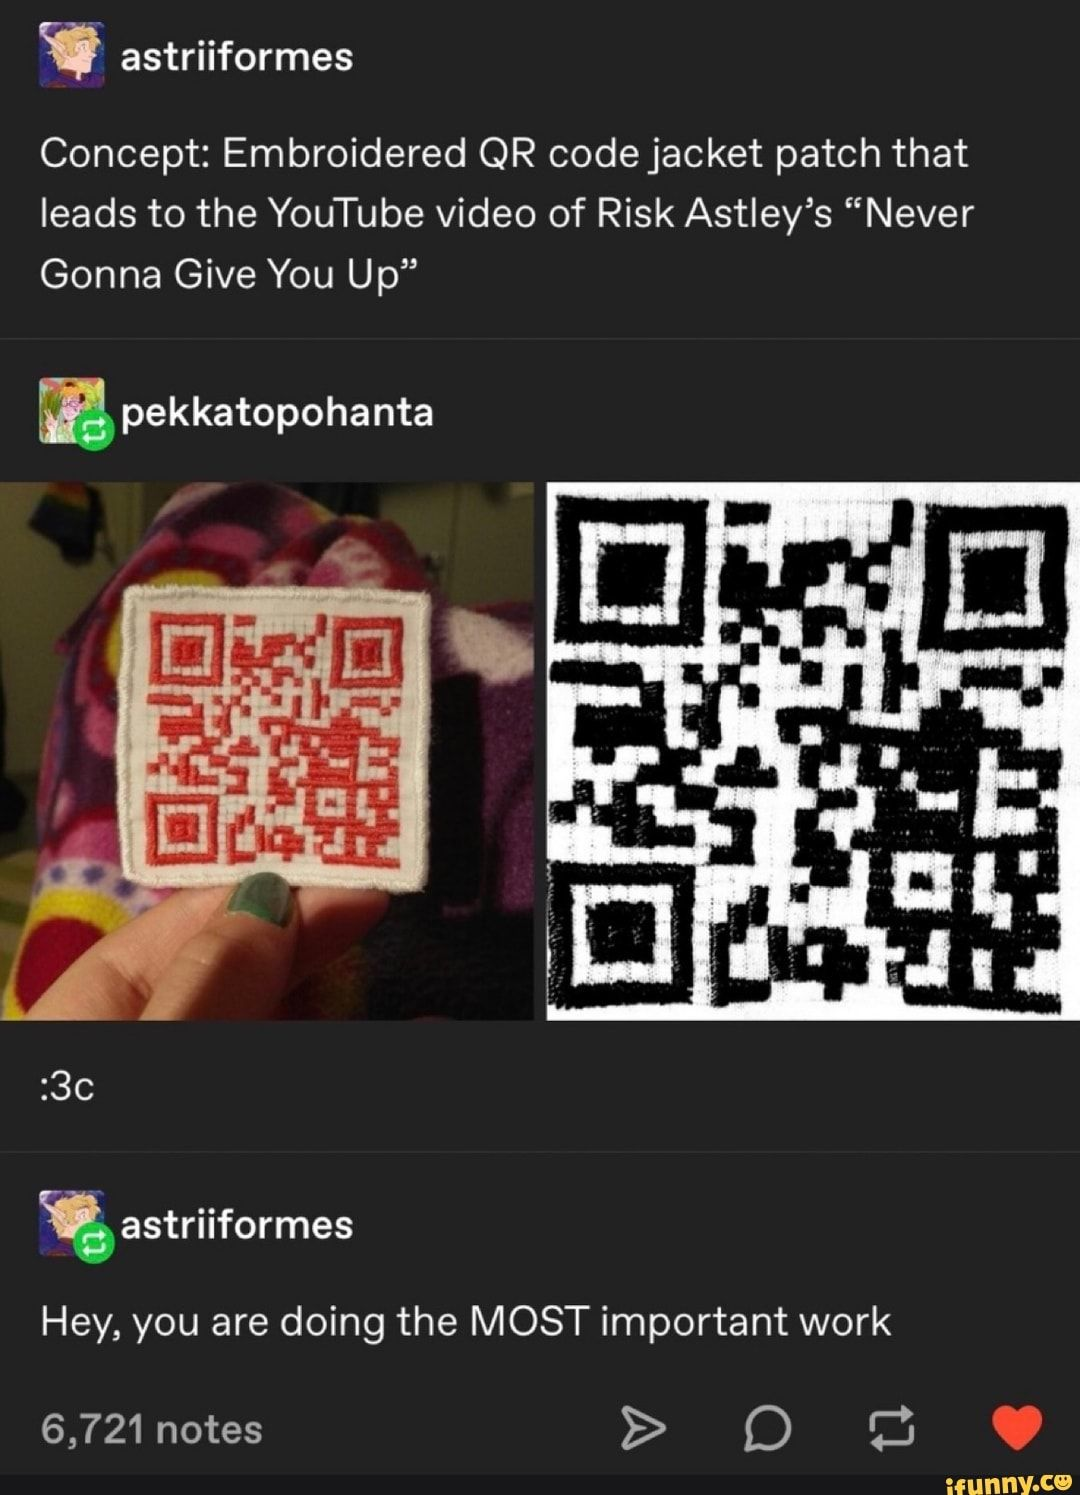 Astriiformes Concept Embroidered Qr Codejacket Patch That Leads To The Youtube Video Of Risk Astley S Never Gonna Give You Up Ifunny Patches Tumblr Funny Tumblr Posts